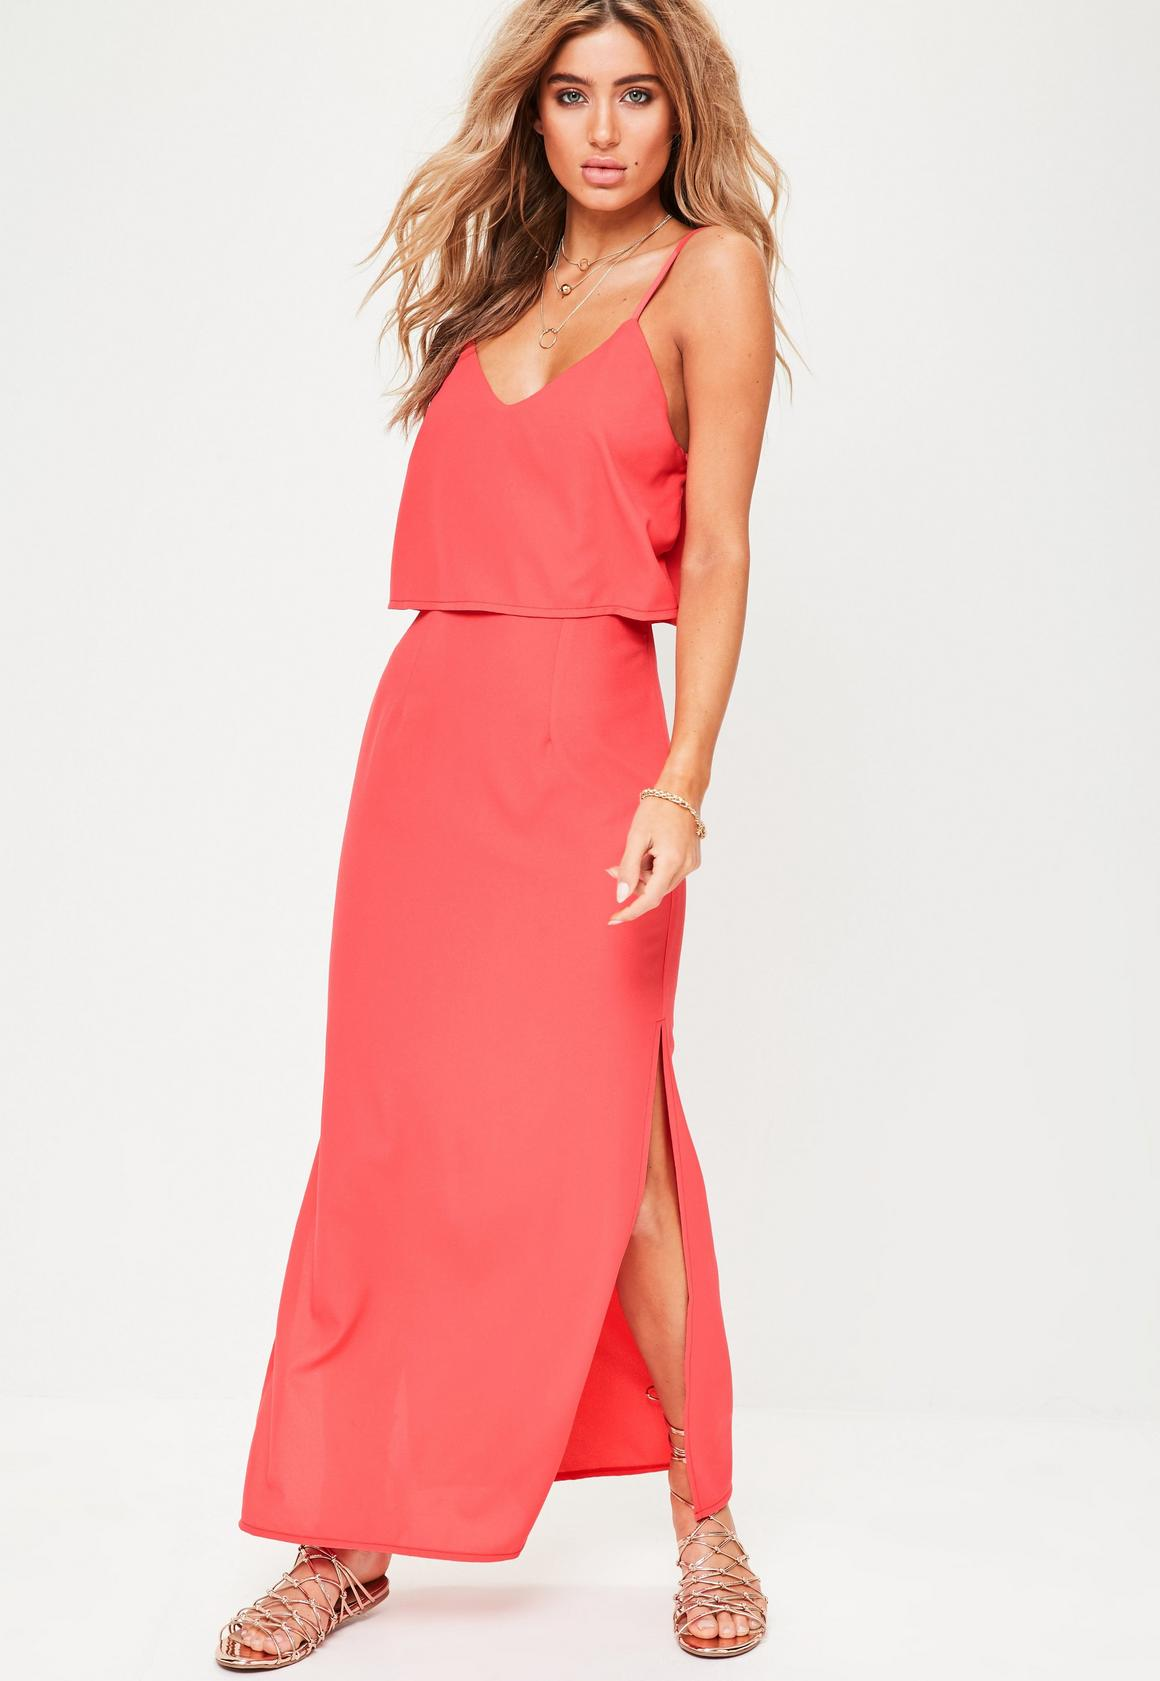 Coral Crepe Strappy Maxi Dress | Missguided